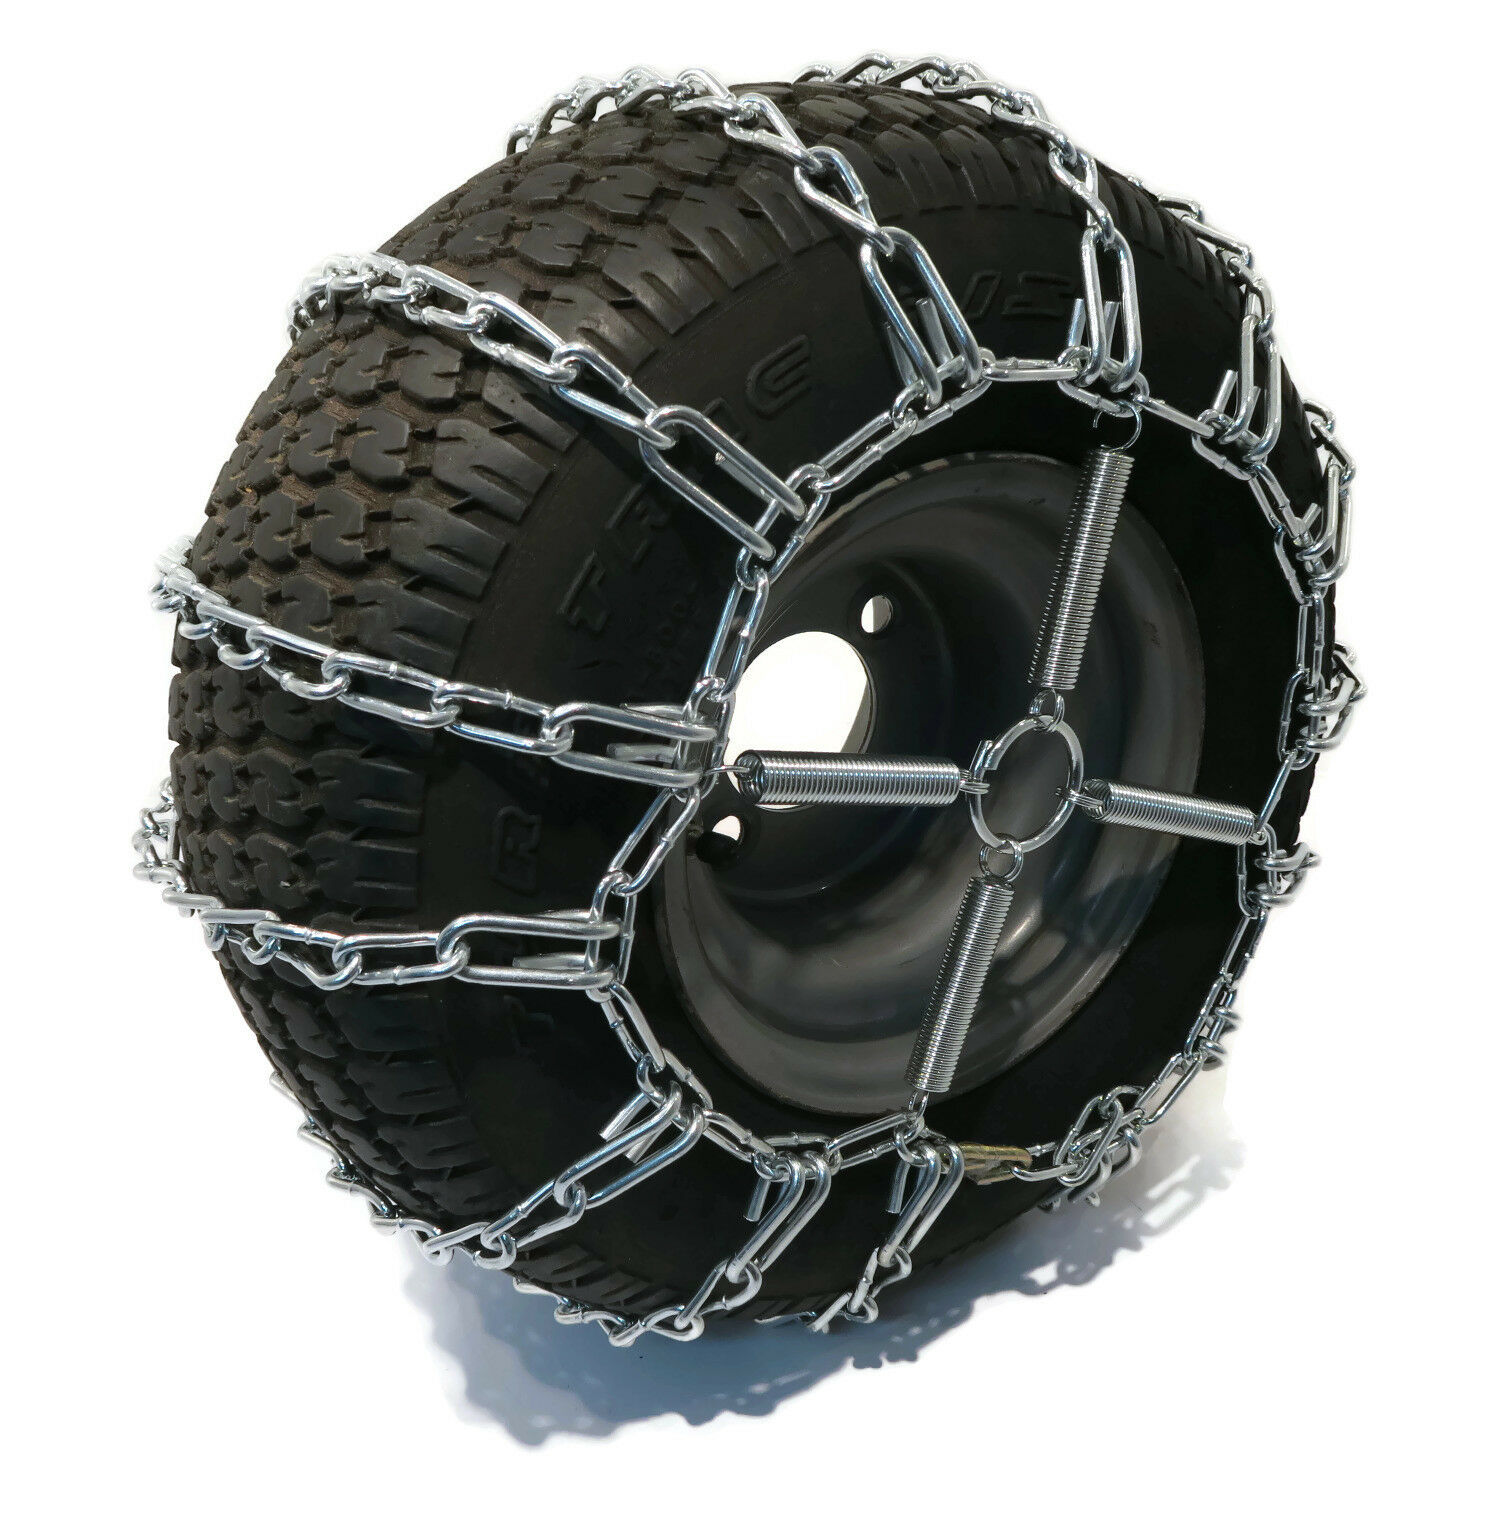 2 Link TIRE CHAINS /& TENSIONERS 18x8.5x8 for Garden Tractors Riders Snowblower